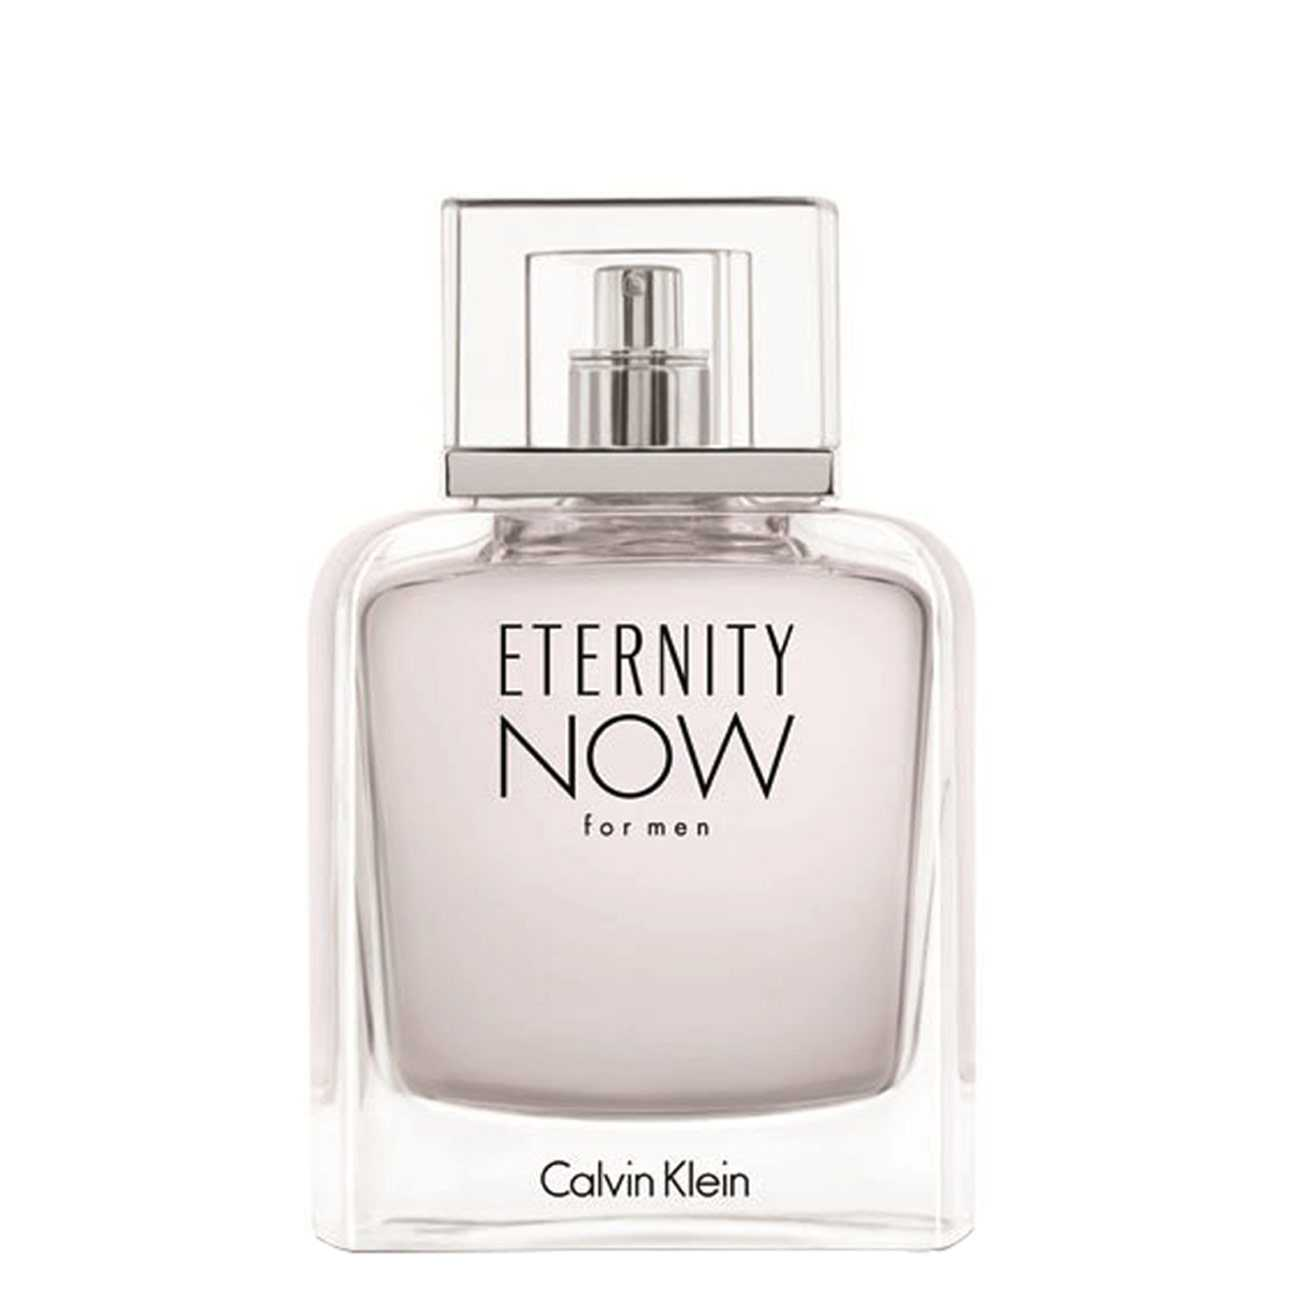 ETERNITY NOW 100ml